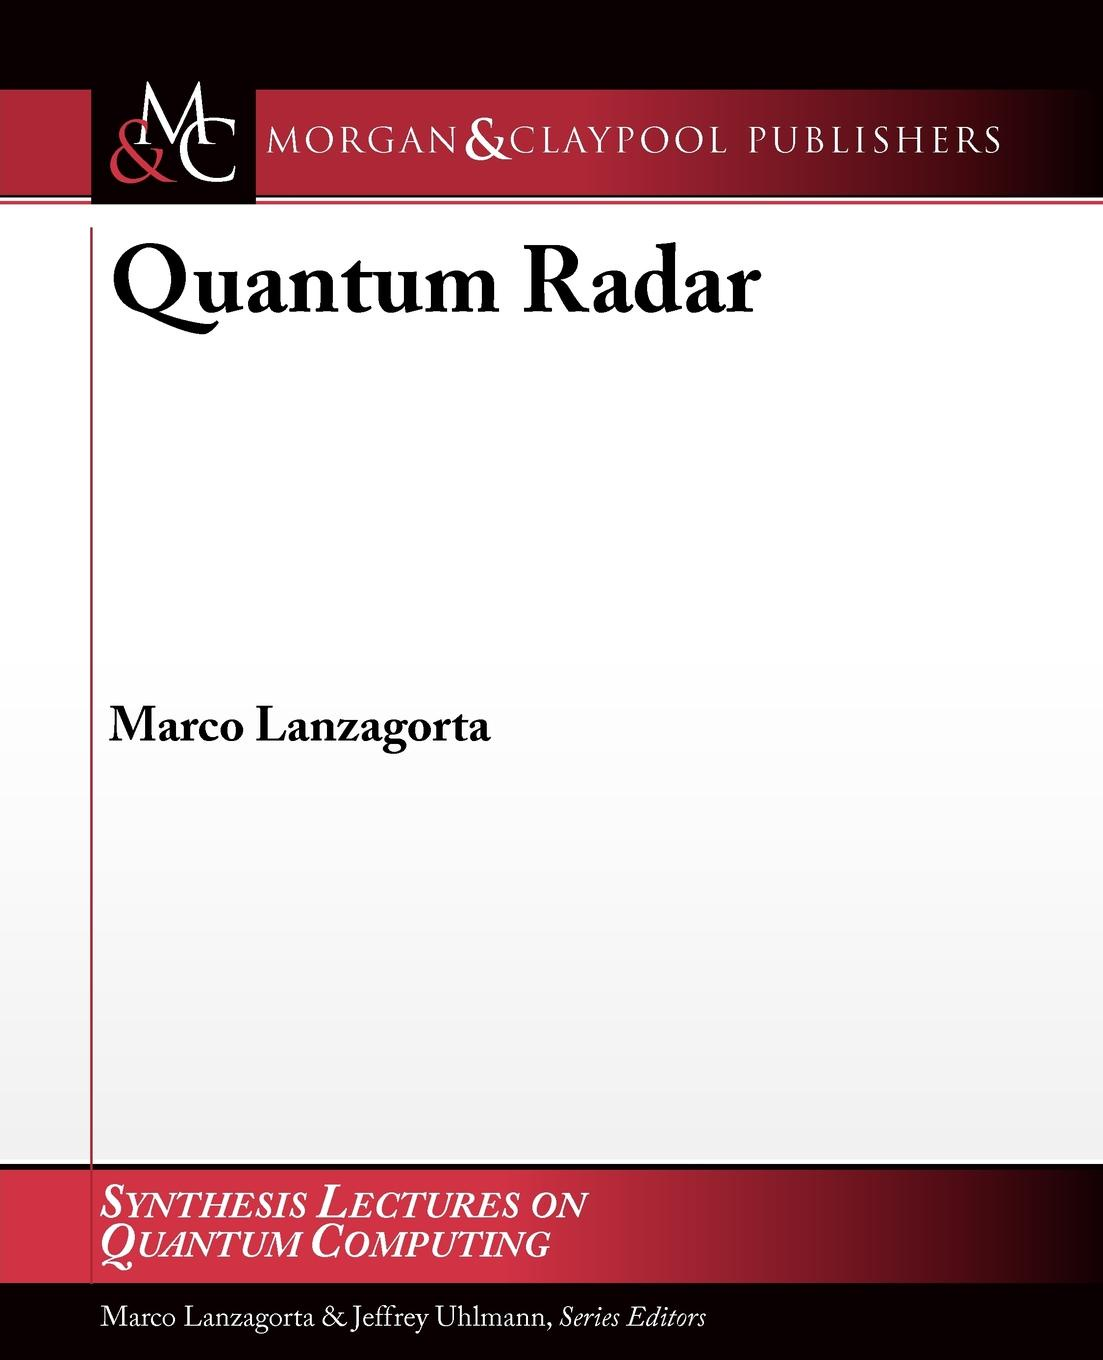 Marco Lanzagorta Quantum Radar martin bojowald the universe a view from classical and quantum gravity isbn 9783527667697